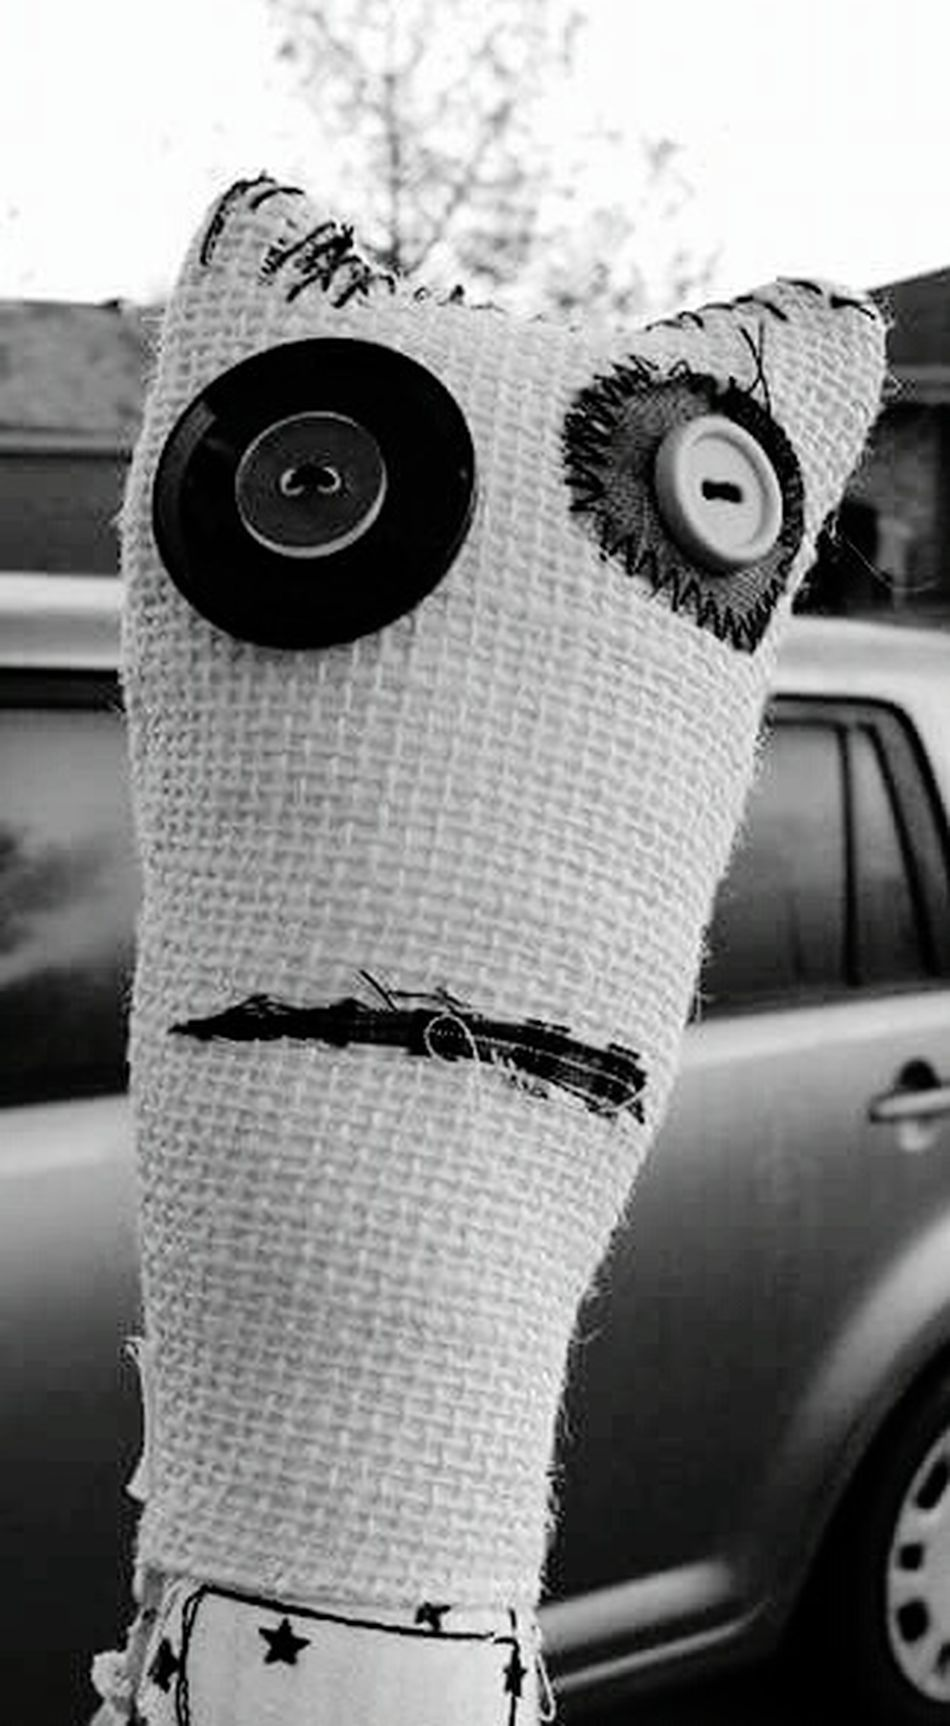 Doll Face Stitches Disappointment Face My Outlet Expression Button Eyes Black And White